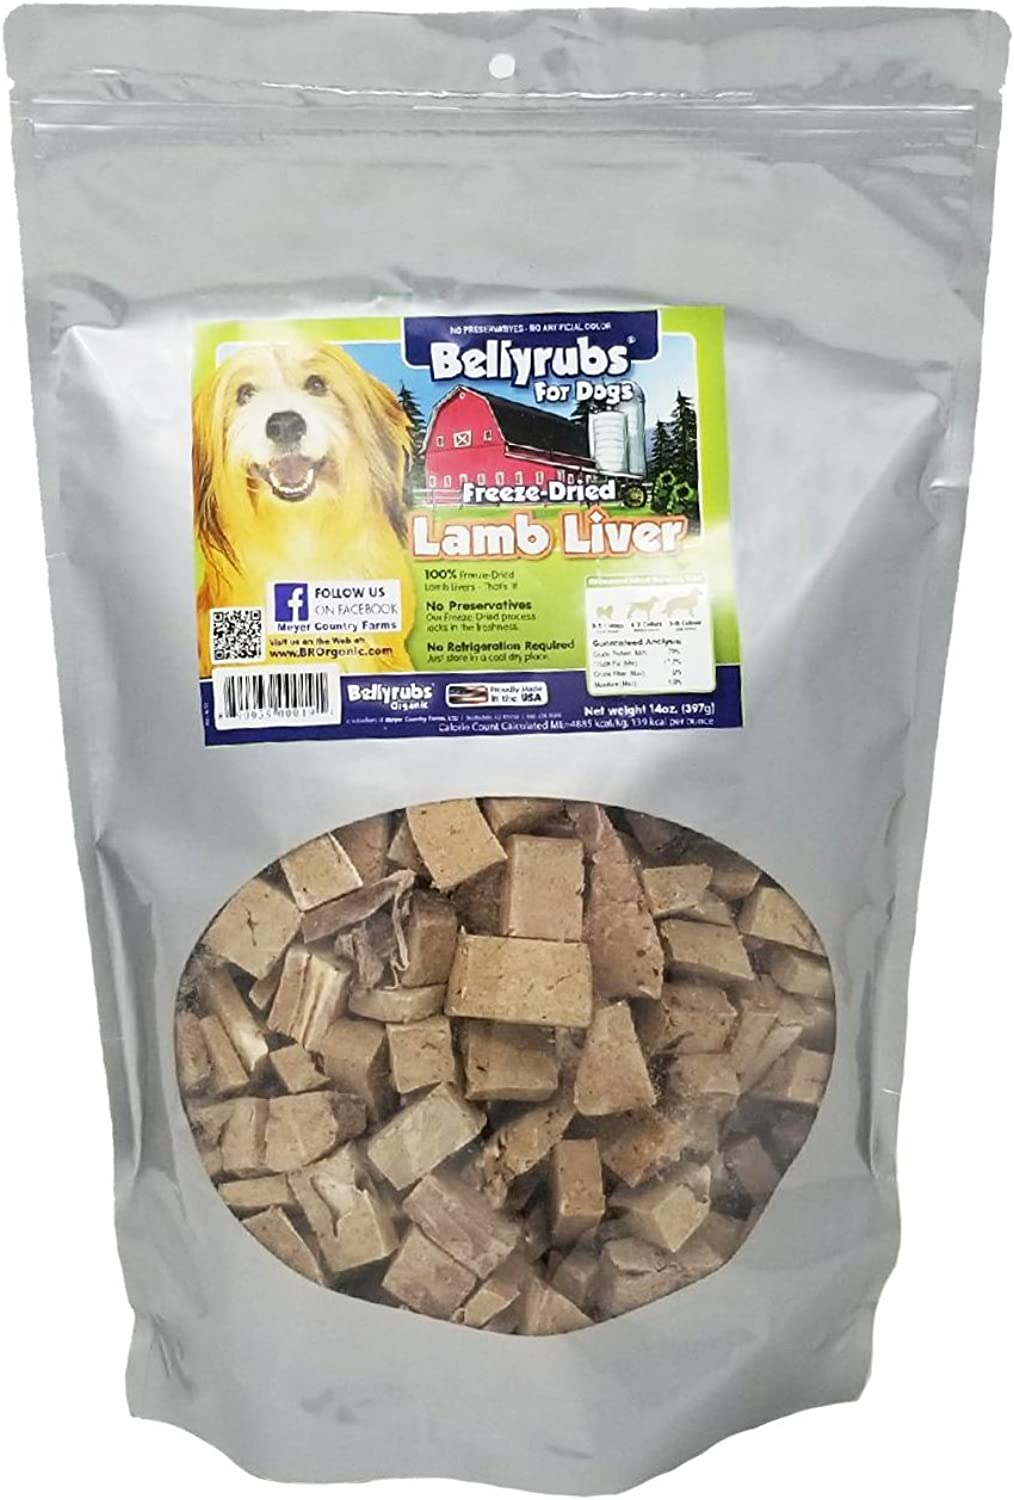 Bellyrubs Organic All Natural 14Ounce FreezeDried Dog Treats, Lamb and Liver Flavor